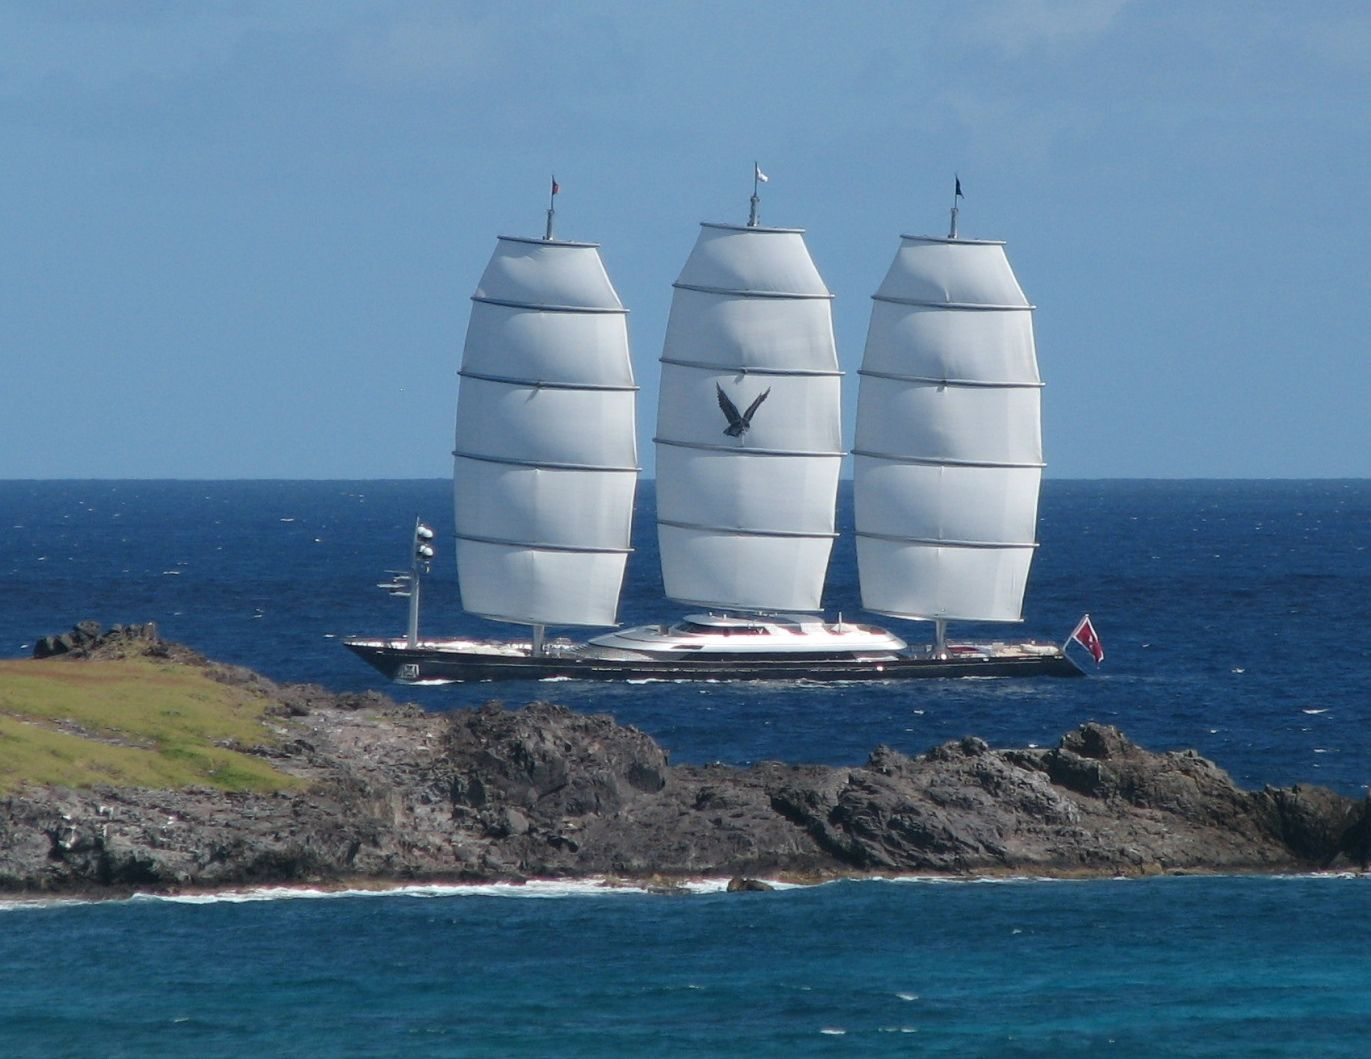 Maltese Falcon Closer Luxury Sailing Yachts Boats Luxury Sailing Yacht